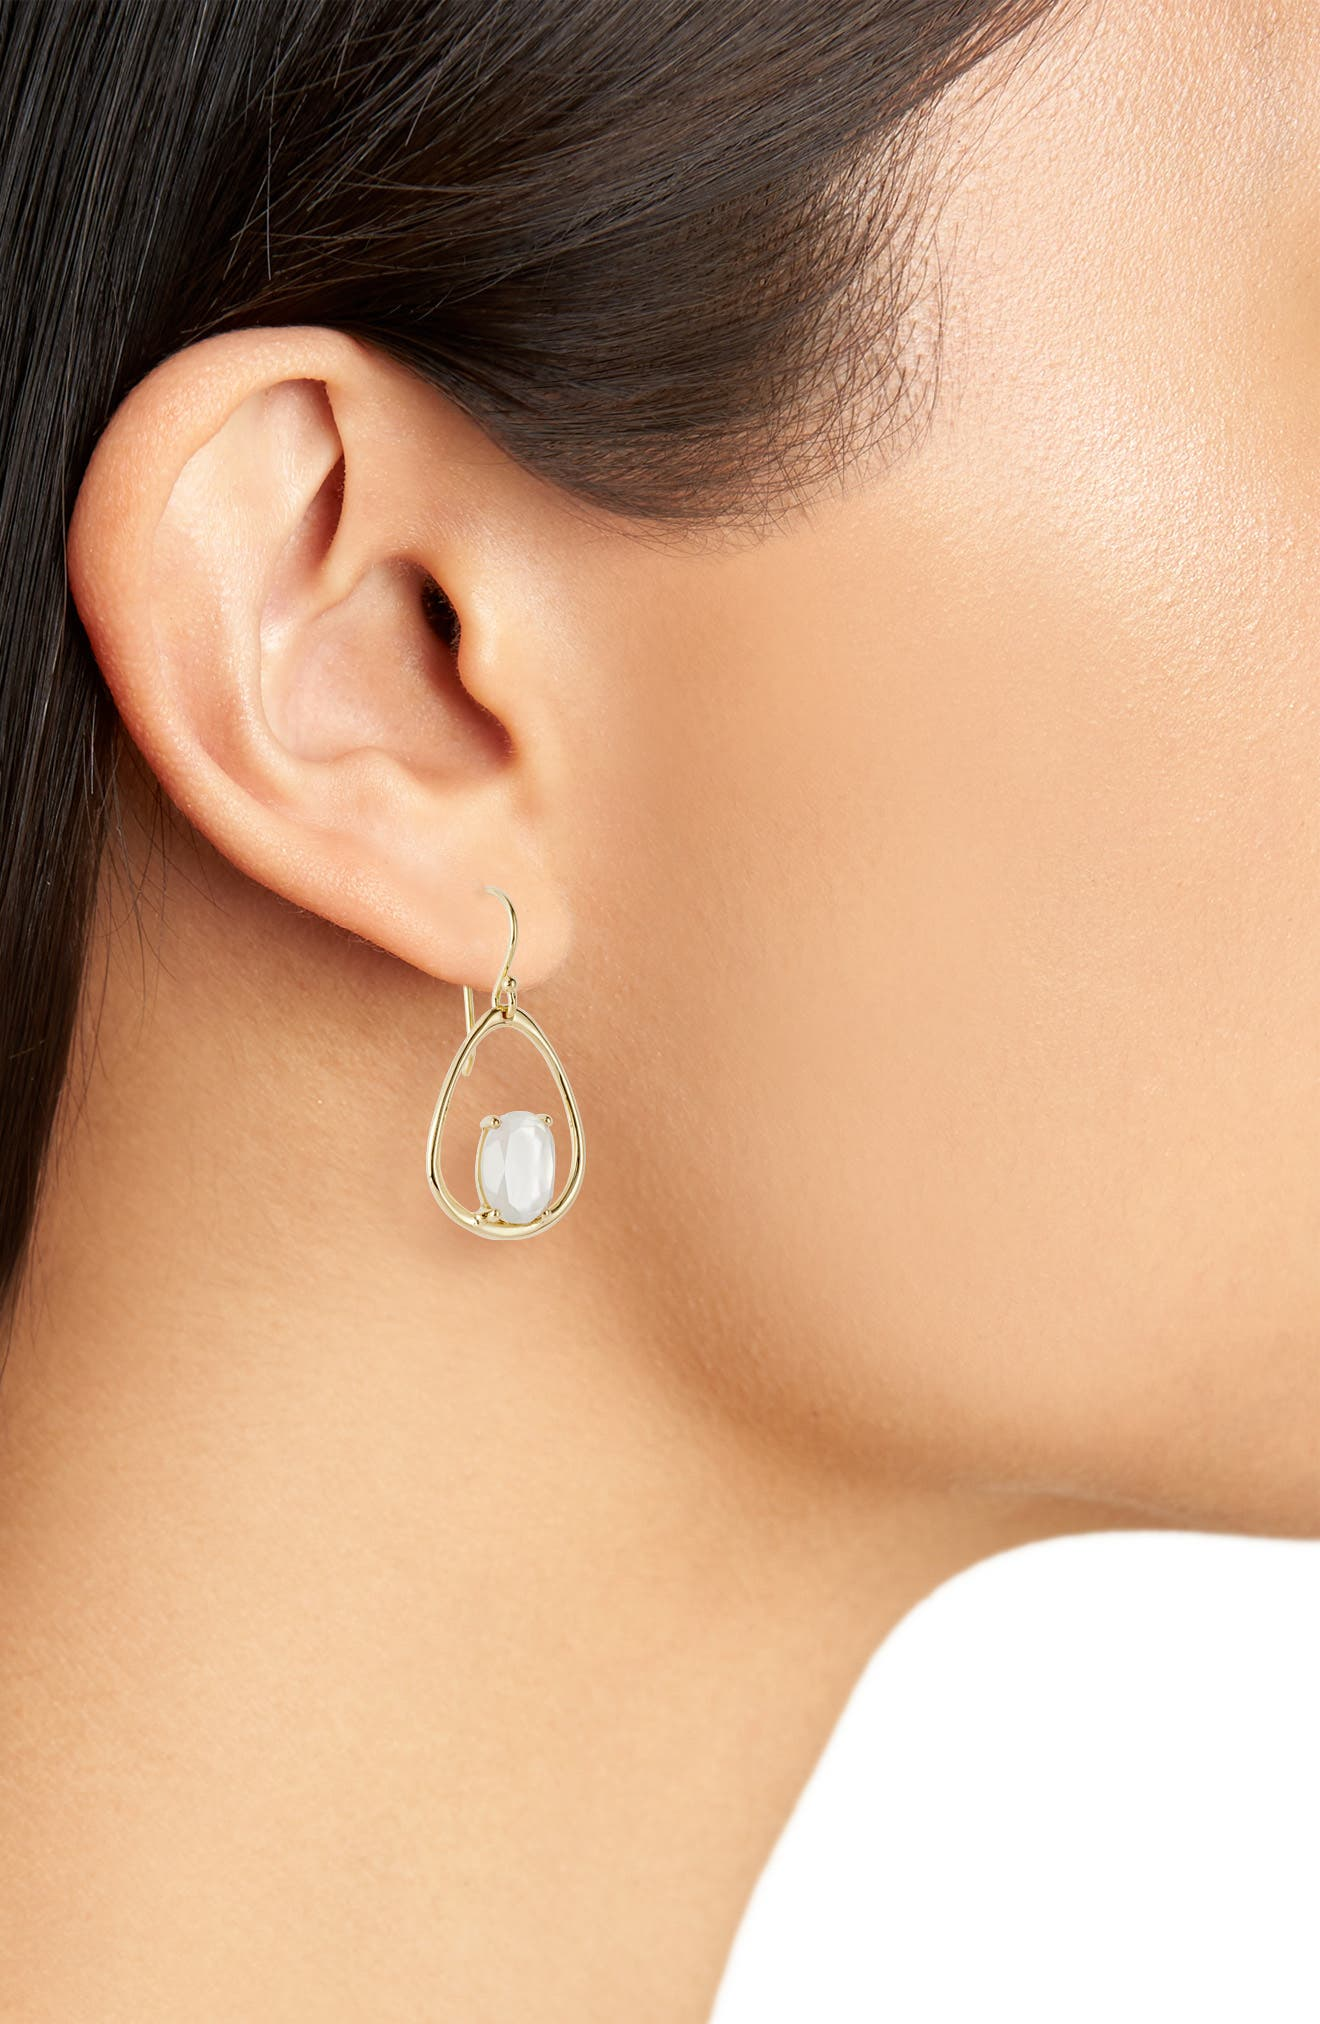 Rock Candy 18K Gold Small Drop Earrings,                             Alternate thumbnail 2, color,                             GOLD/ MOTHER OF PEARL